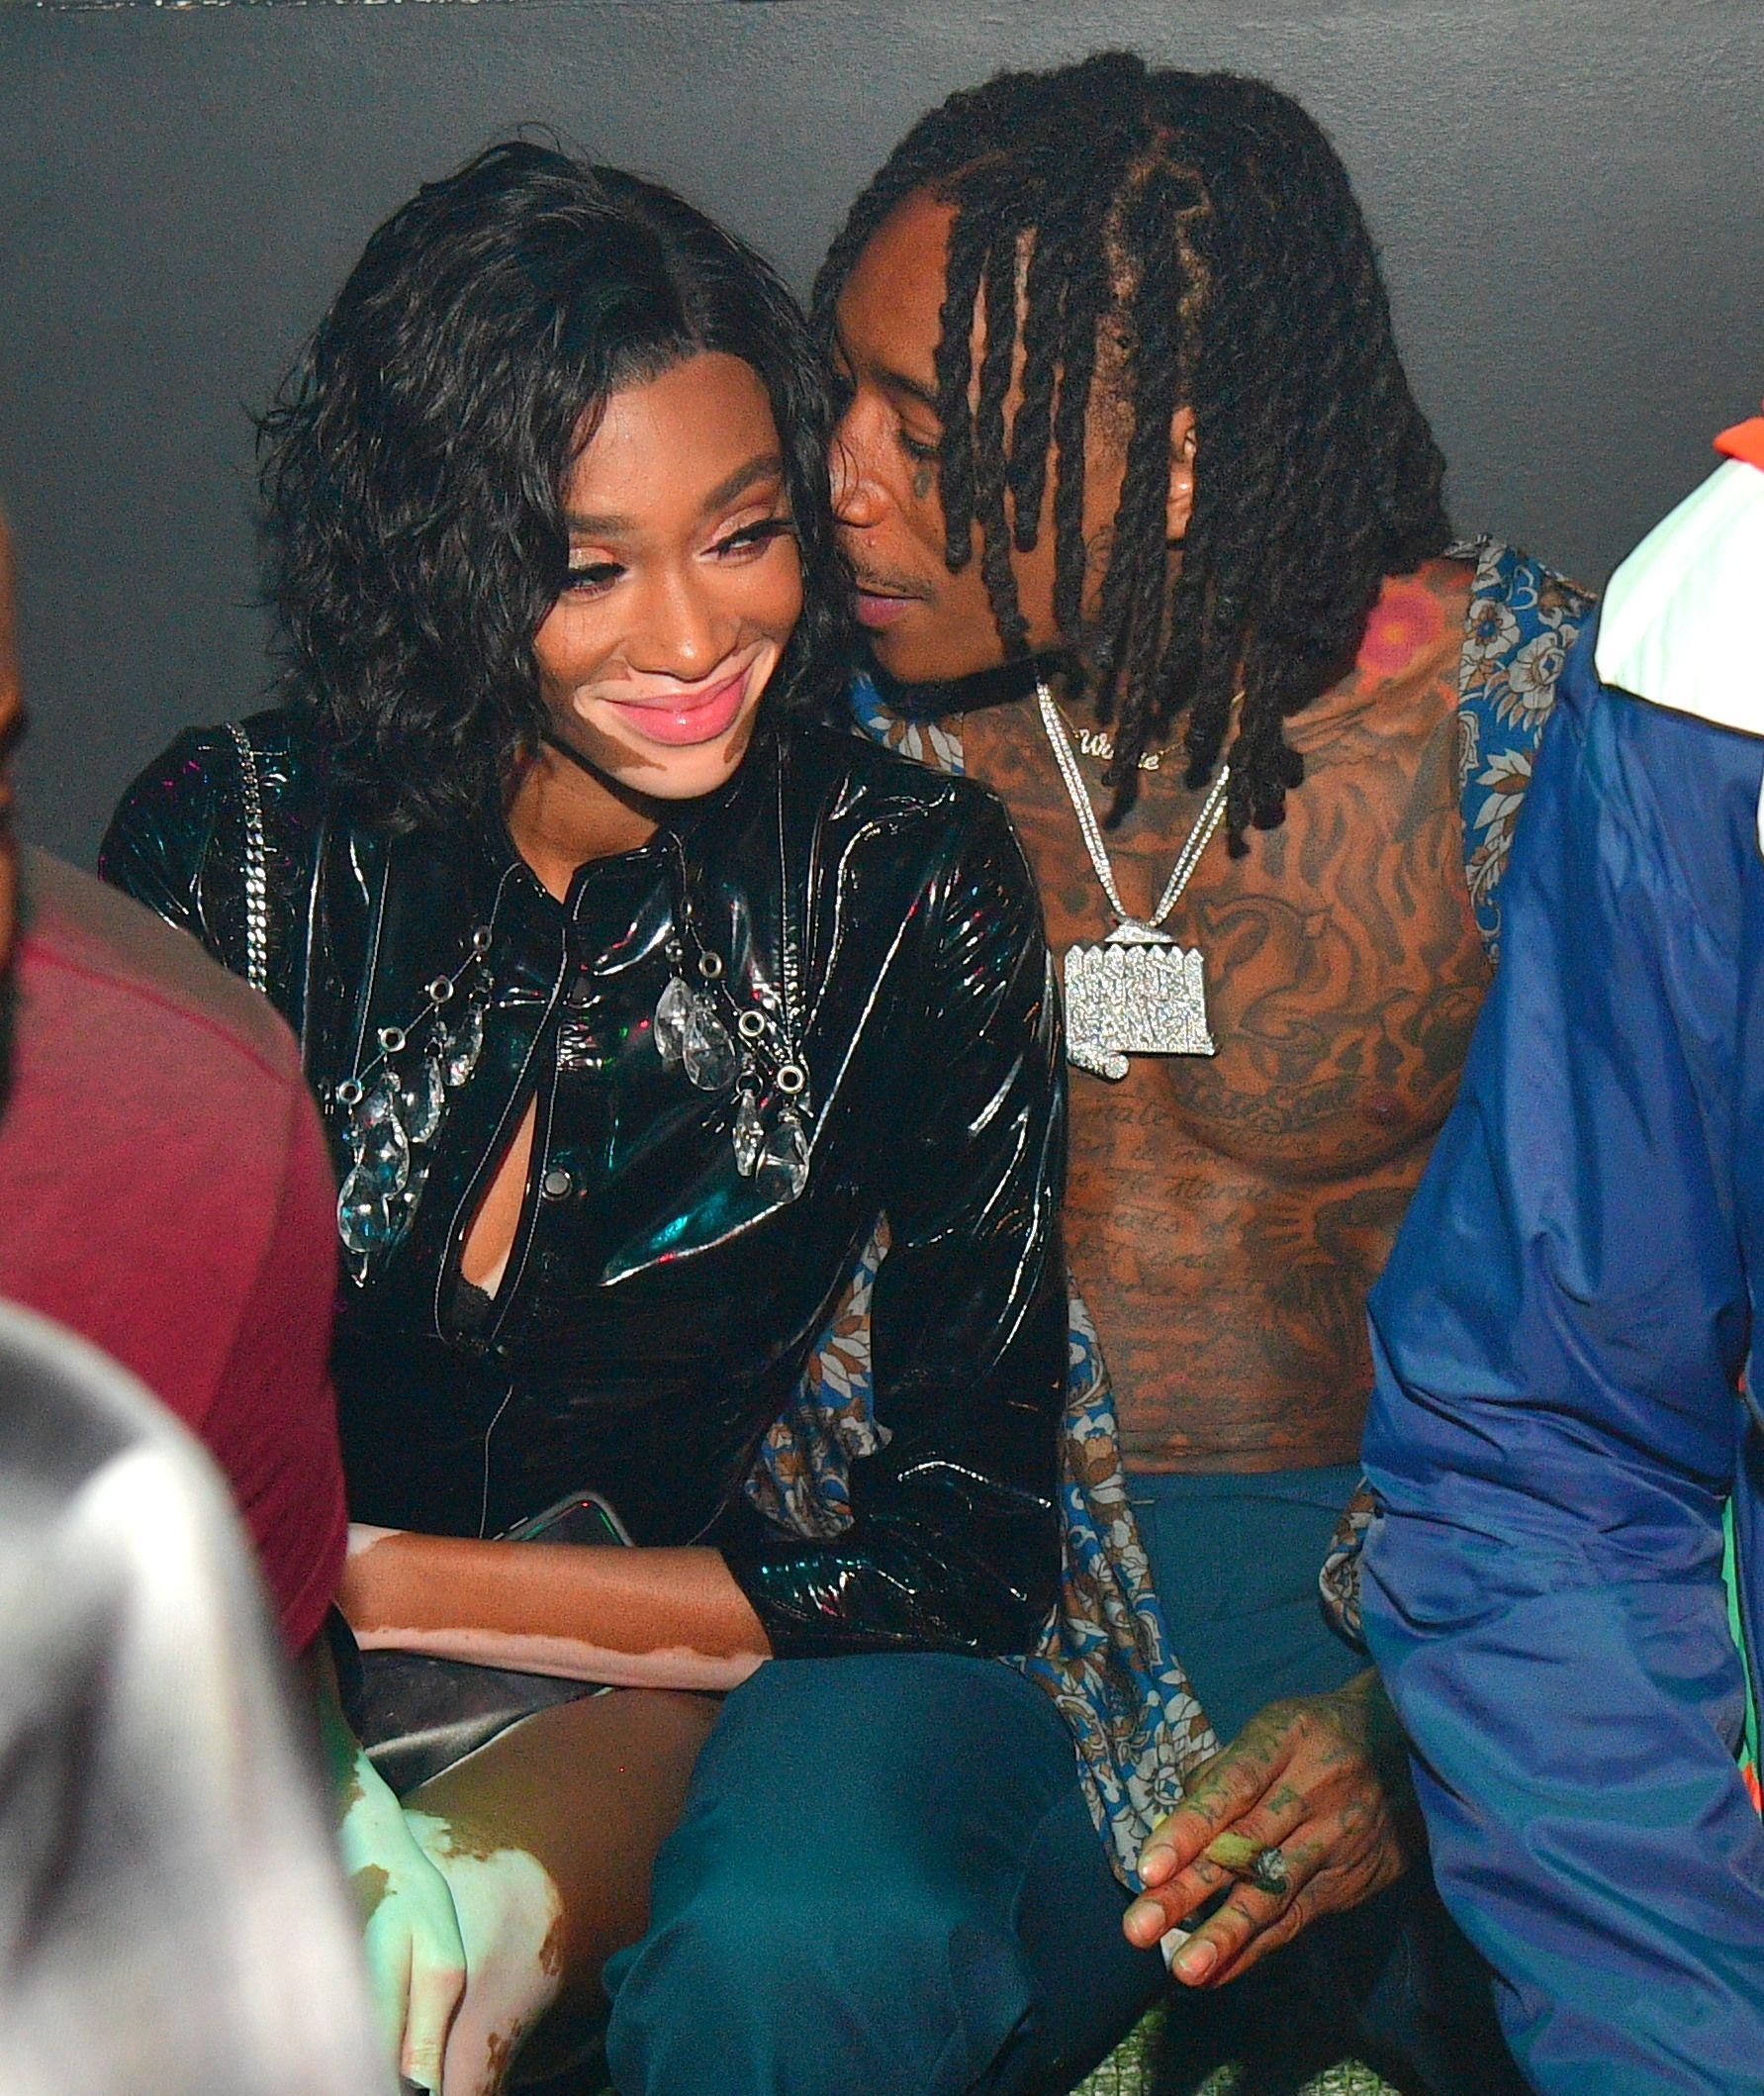 Wiz Khalifa And Winnie Harlow Winnie Harlow Wiz Khalifa The Wiz